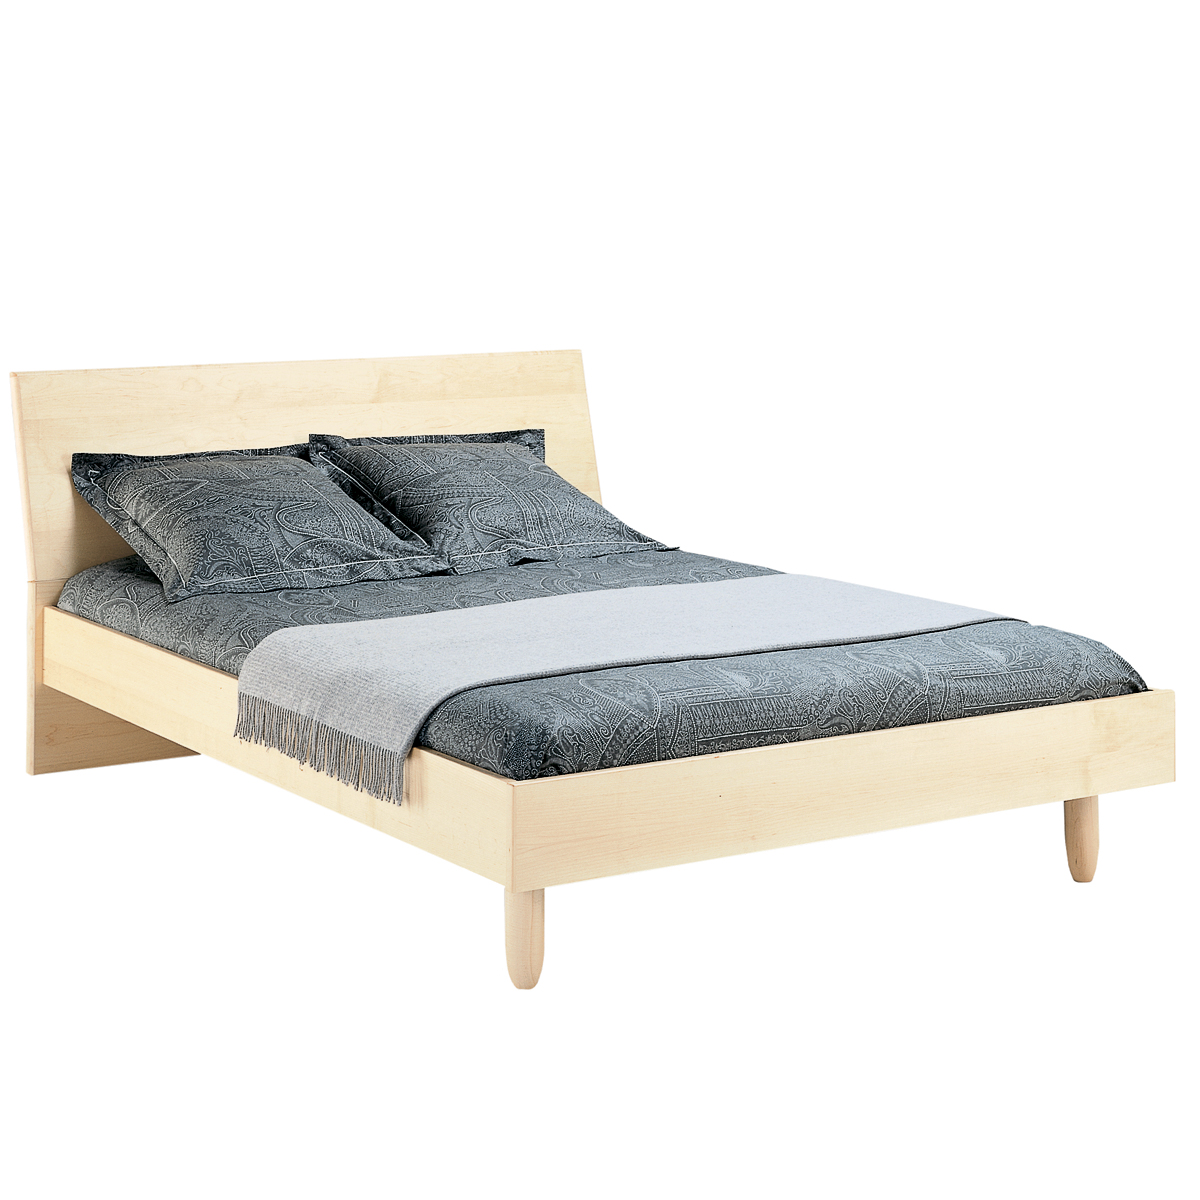 Meubles Mobican Furniture Contempora Bed With Wood Headboard Mobican